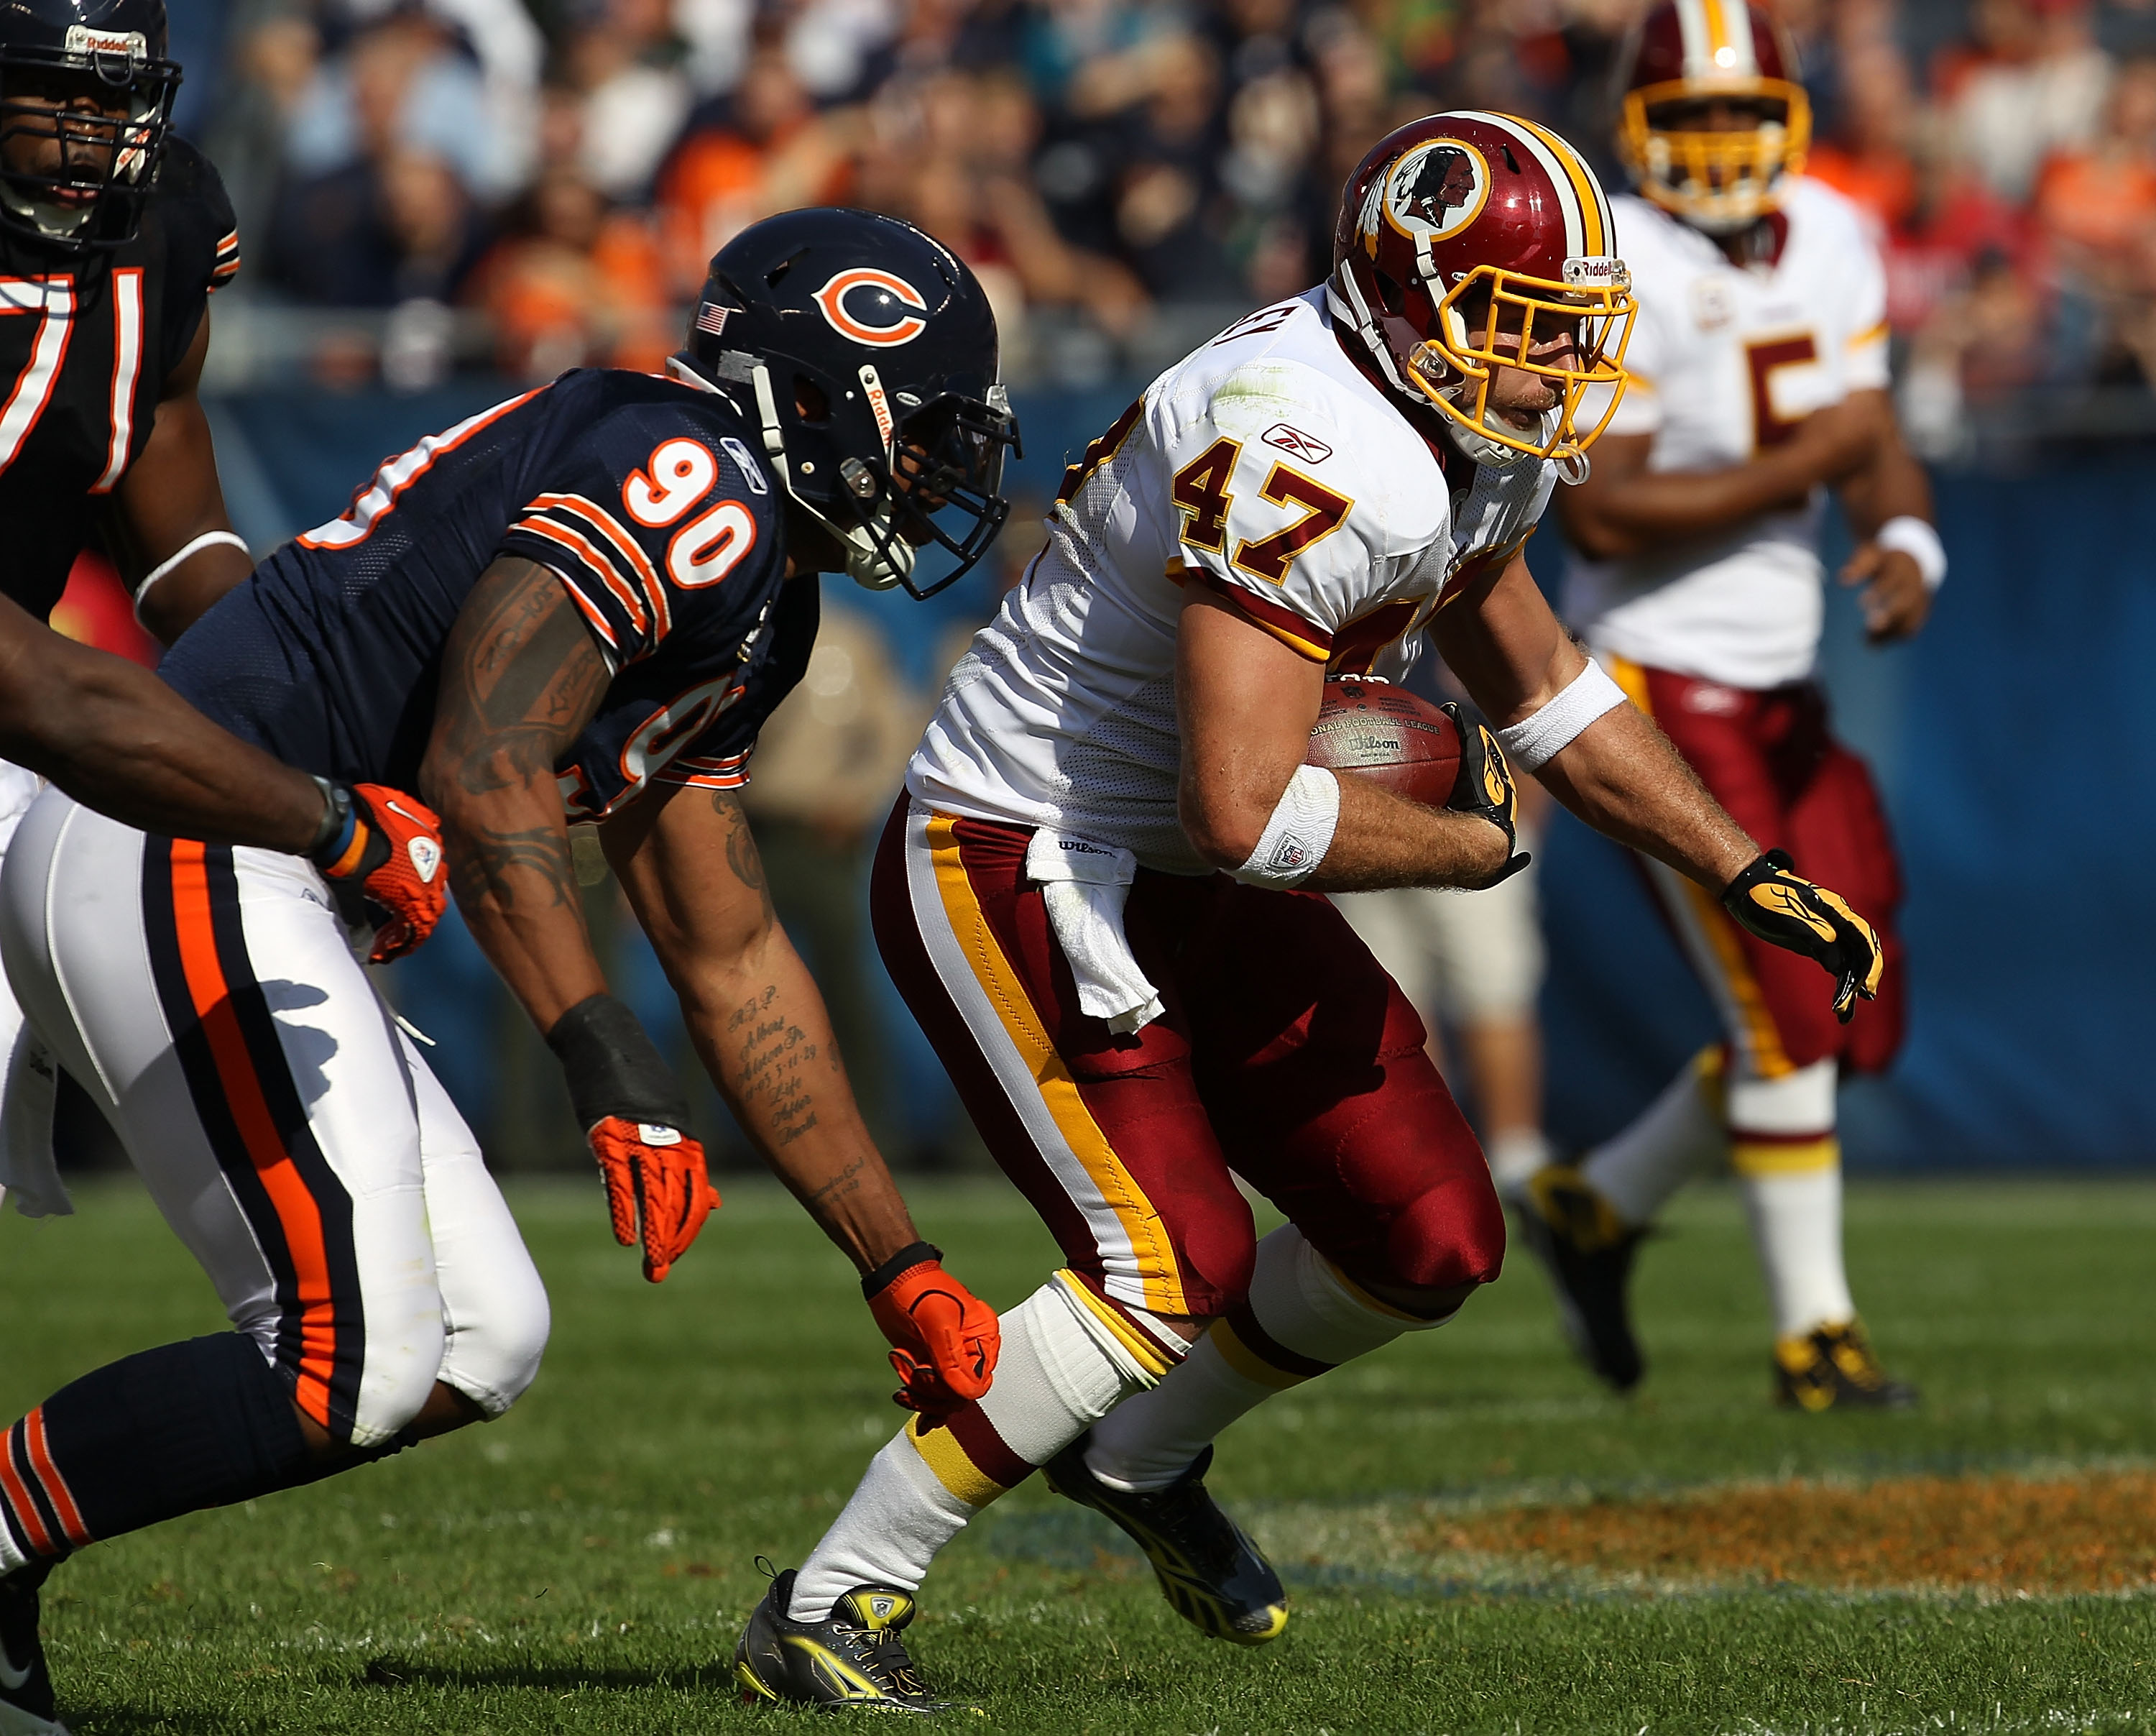 CHICAGO - OCTOBER 24: Chris Cooley #47 of the Washington Redskins runs pursued by Julius Peppers #90 of the Chicago Bears at Soldier Field on October 24, 2010 in Chicago, Illinois. The Redskins defeated the Bears 17-14. (Photo by Jonathan Daniel/Getty Ima